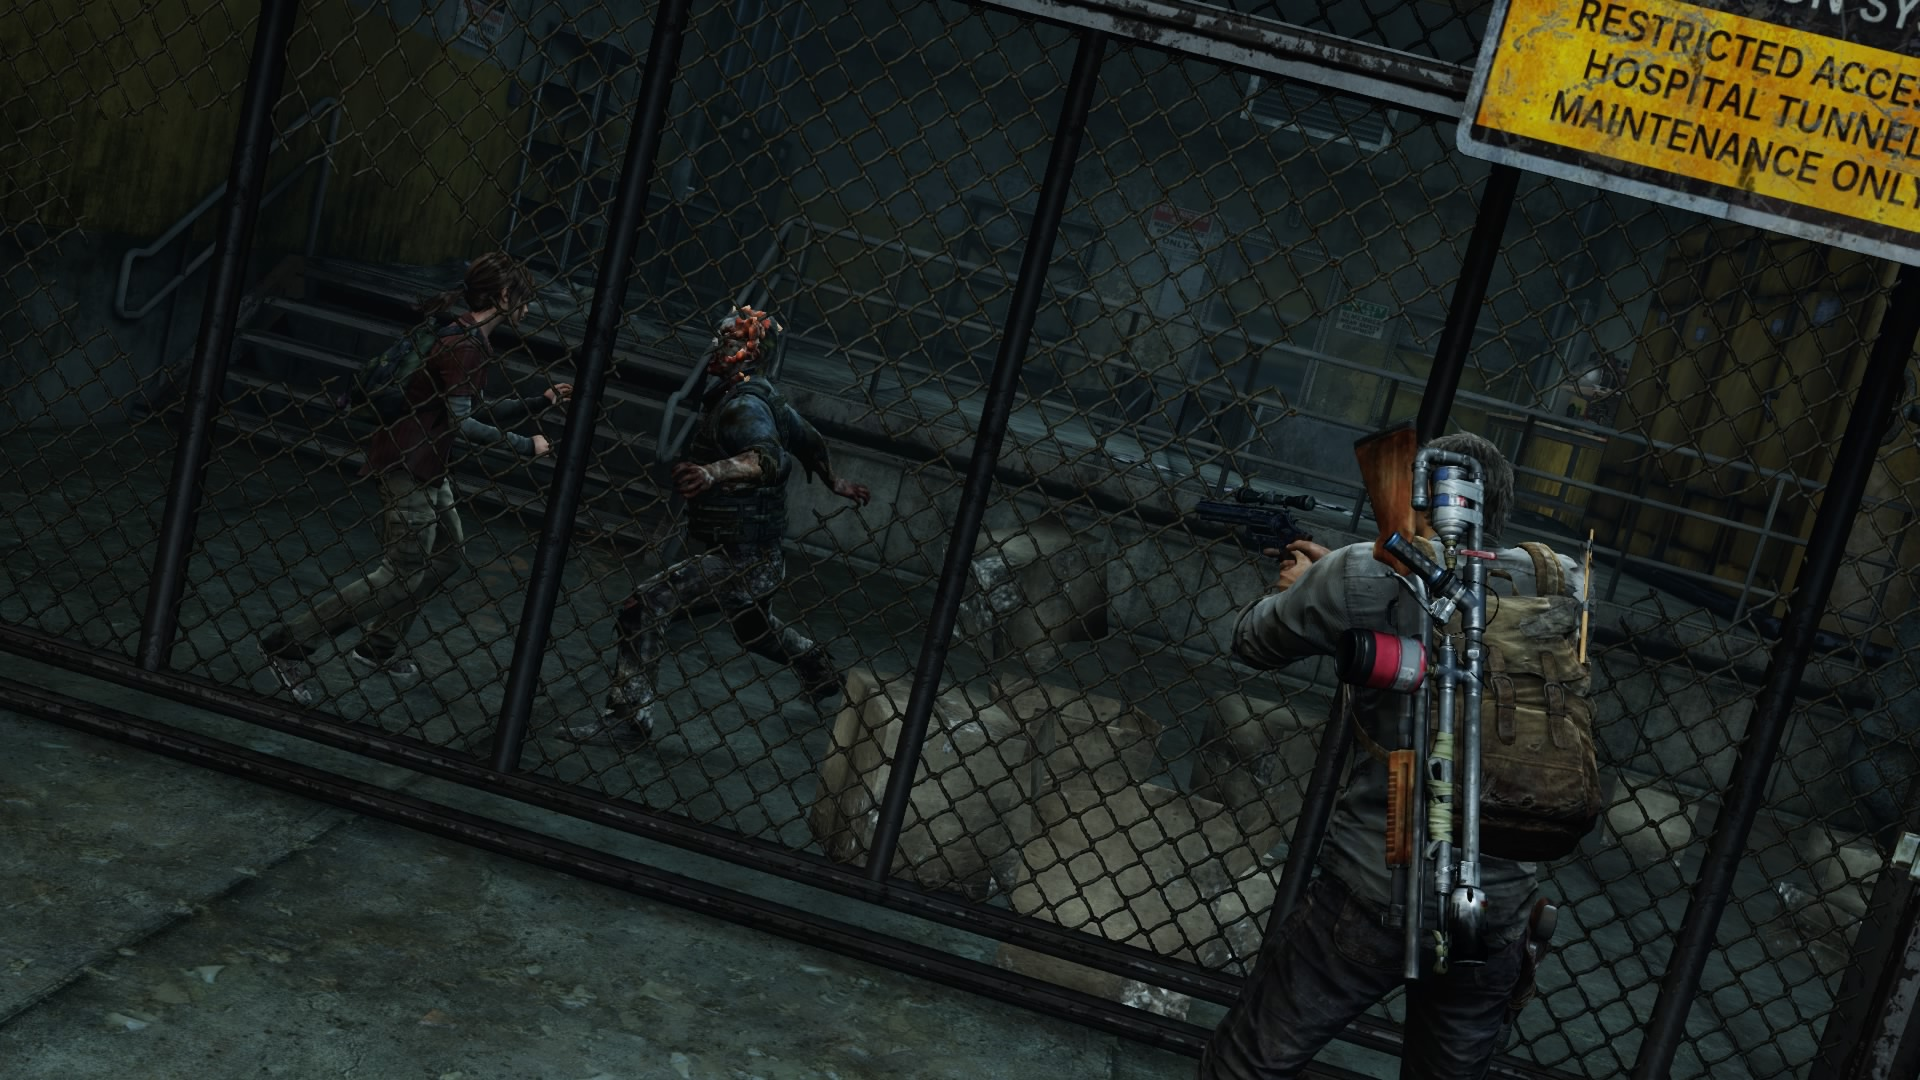 Bus Depot The Last Of Us Wiki FANDOM Powered By Wikia - The last of us lake resort map